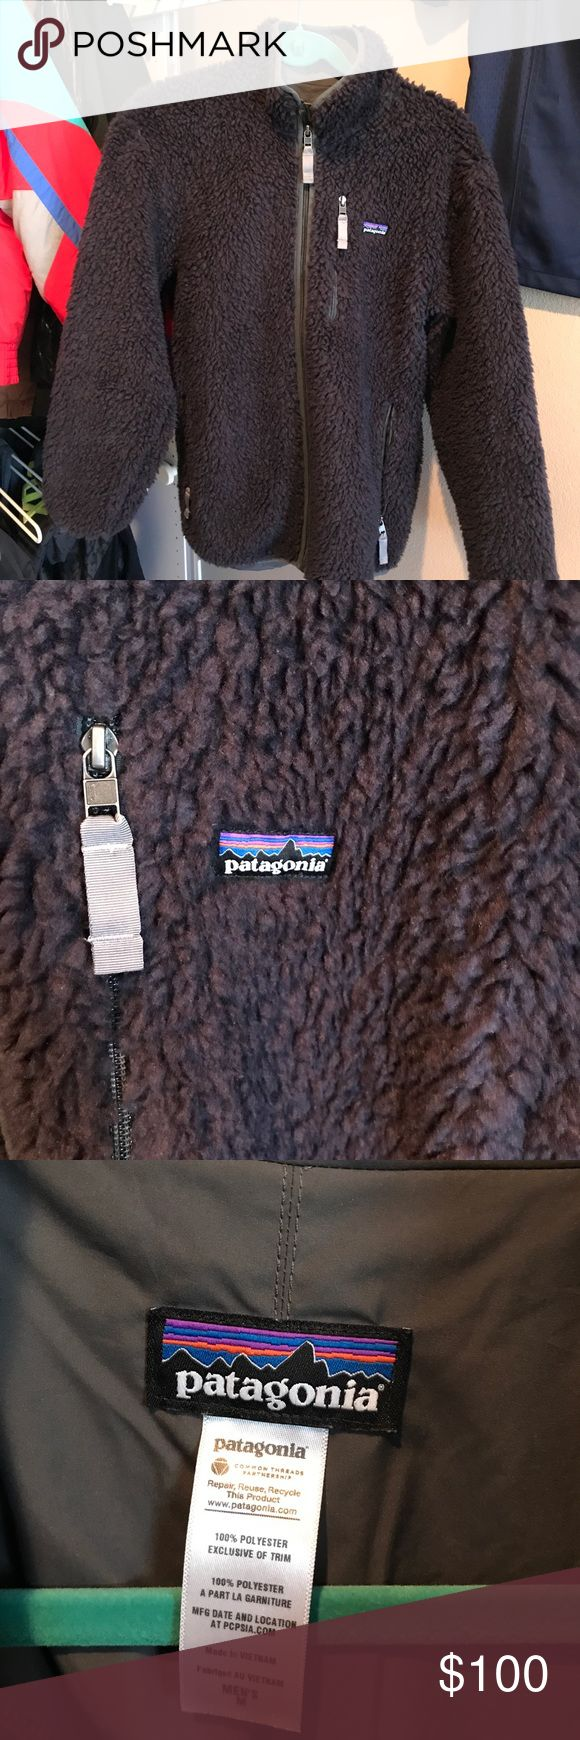 Patagonia Retro X jacket sz M Great condition Size M  Warm and comfy Jackets & Coats